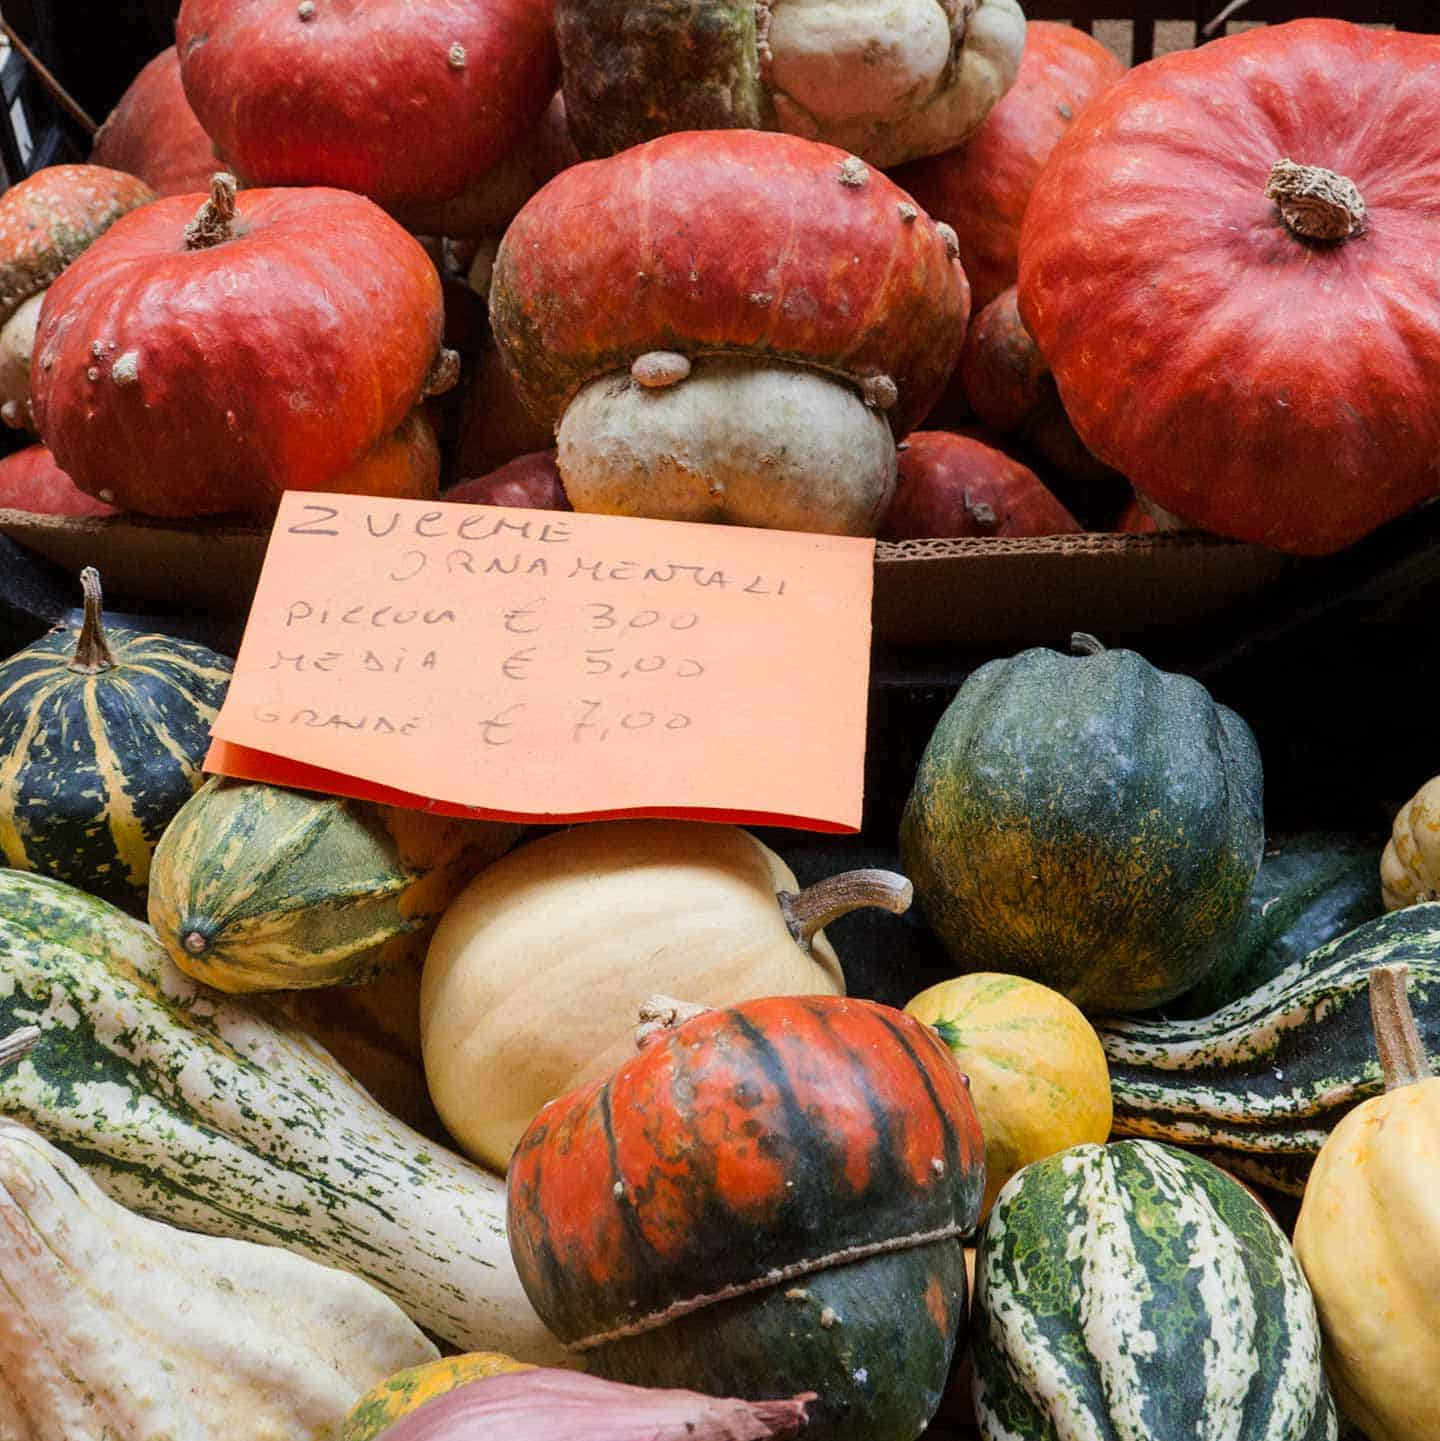 Image of varieties of pumpkin and squash in a Bologna market